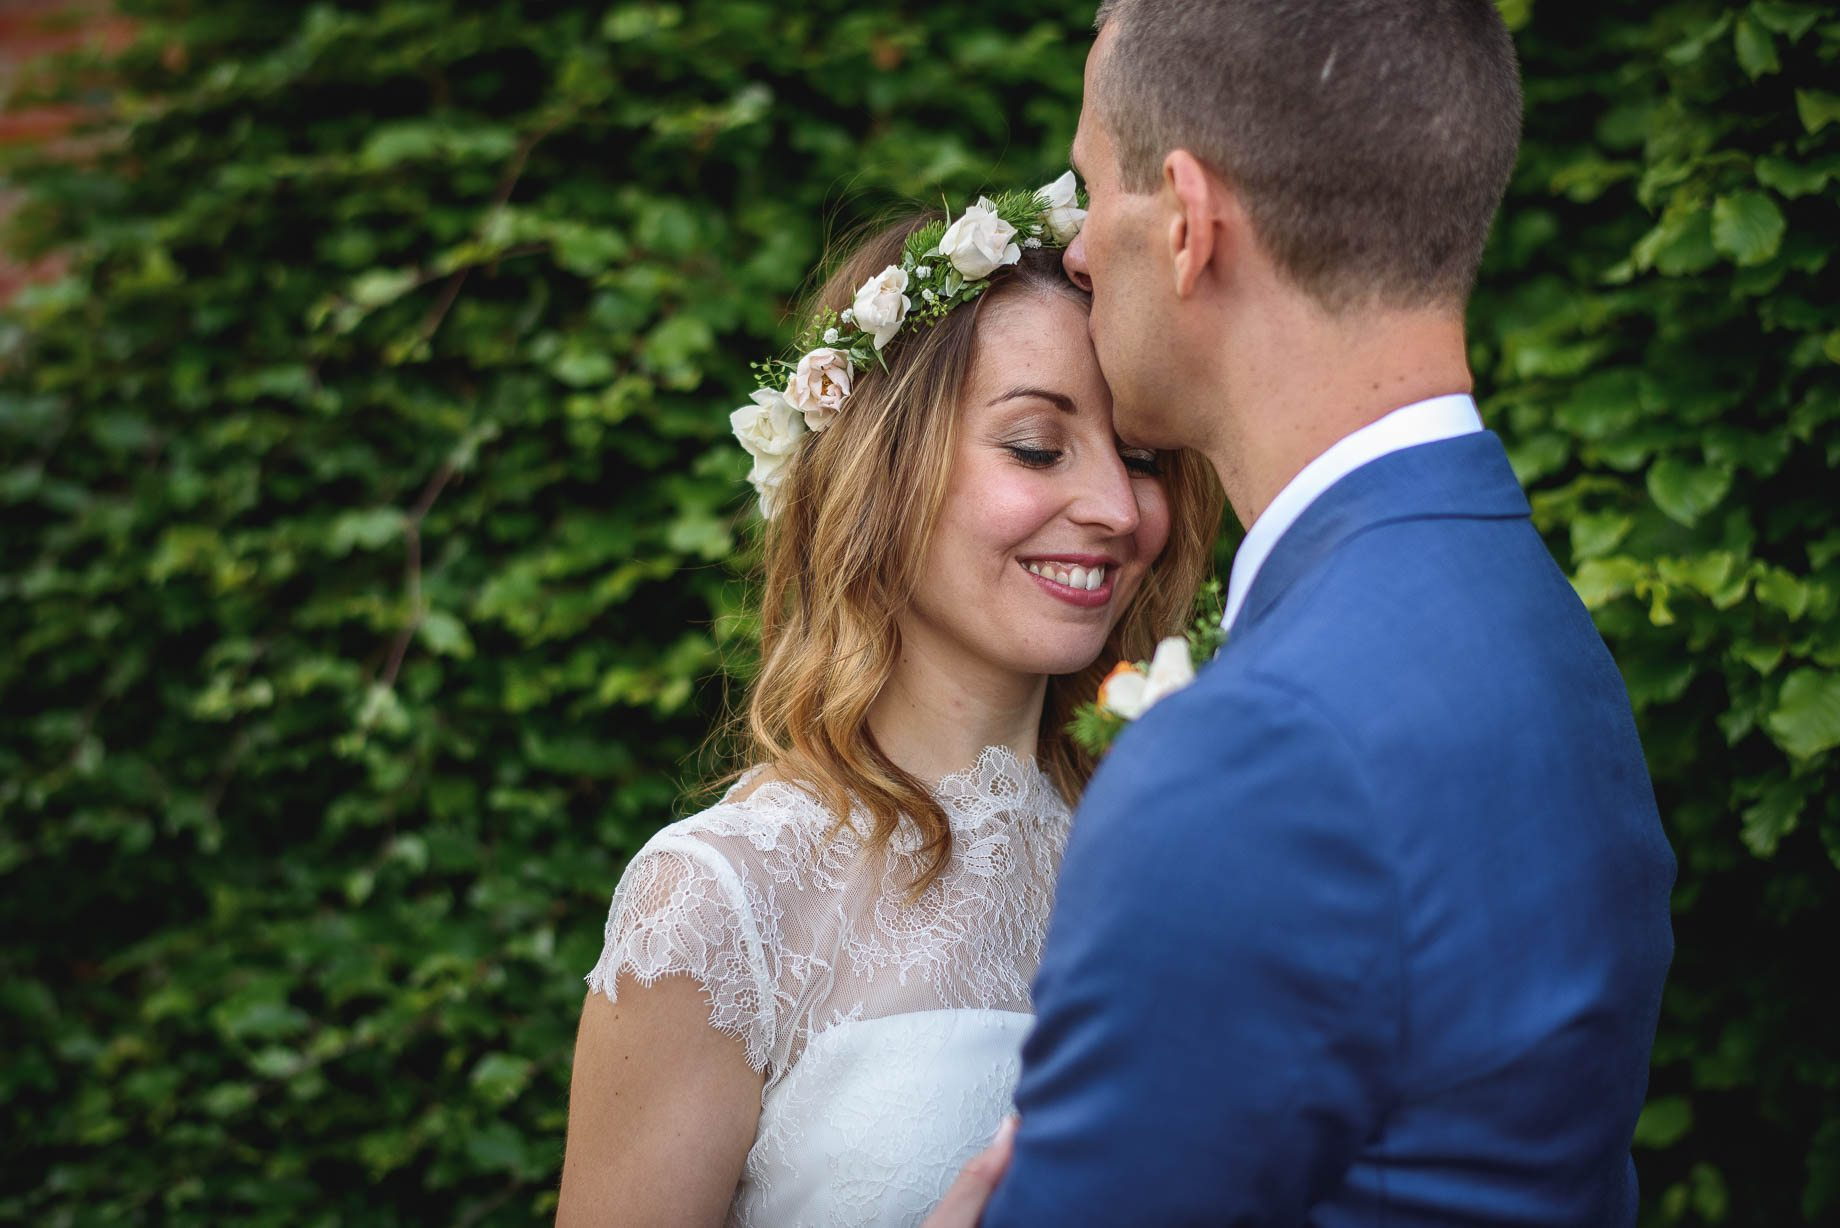 Bury Court Barn wedding photography by Guy Collier - Jo and Jamie (144 of 160)